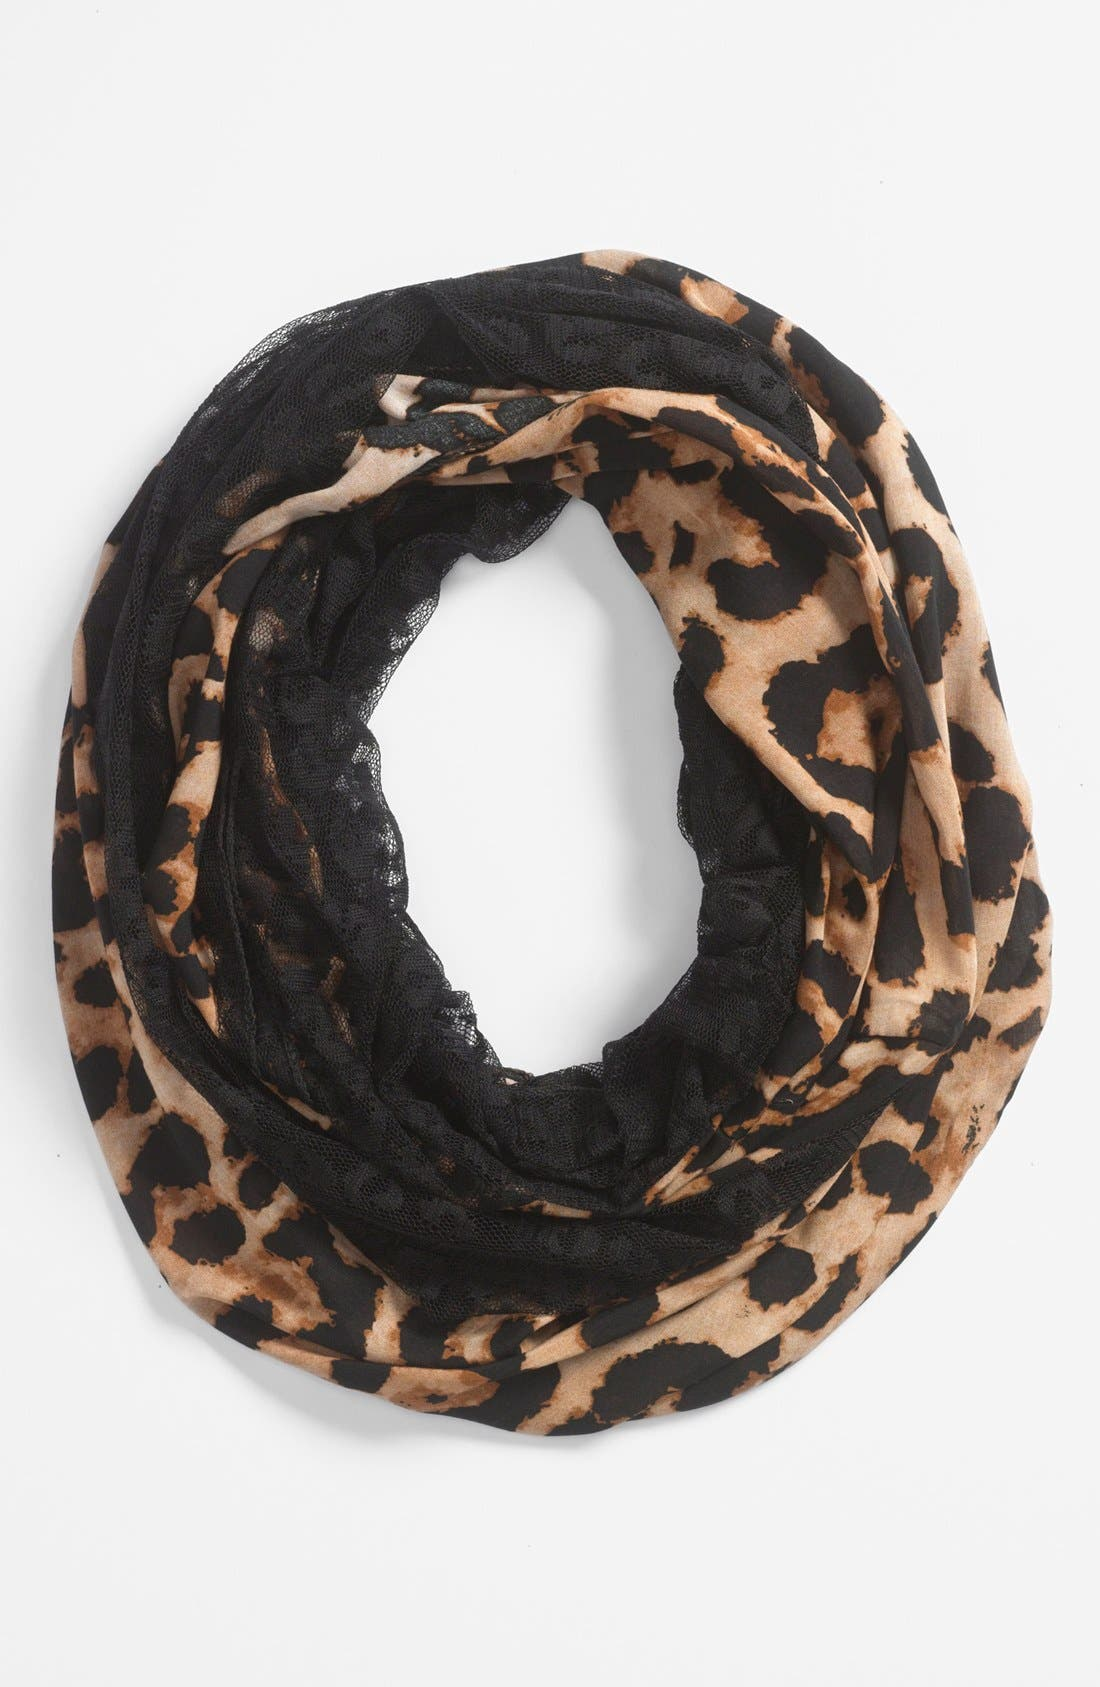 Animal Print & Lace Infinity Scarf,                         Main,                         color, Black/ Camel